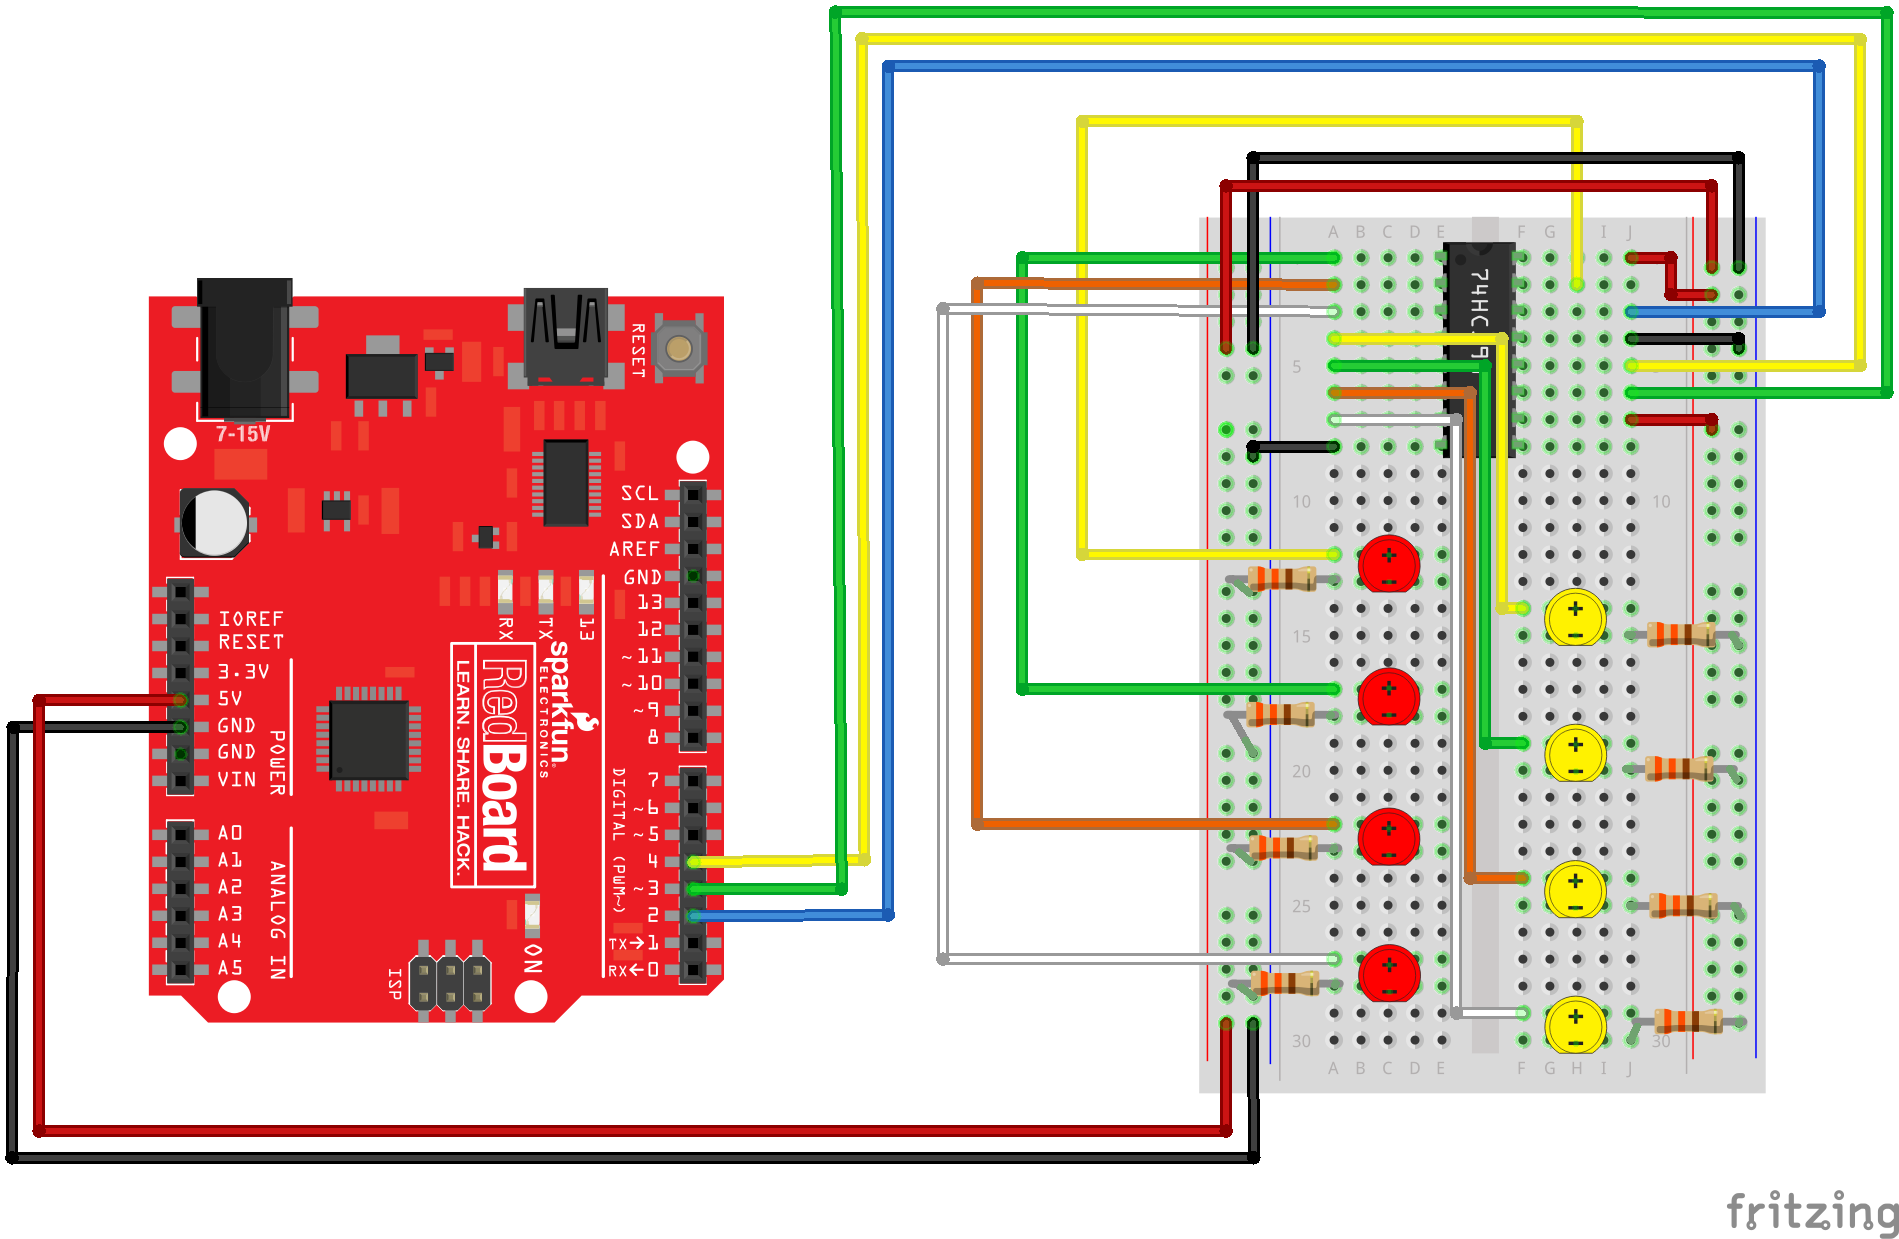 Enjoyable Sik Experiment Guide For Arduino V3 3 Learn Sparkfun Com Wiring Digital Resources Otenewoestevosnl